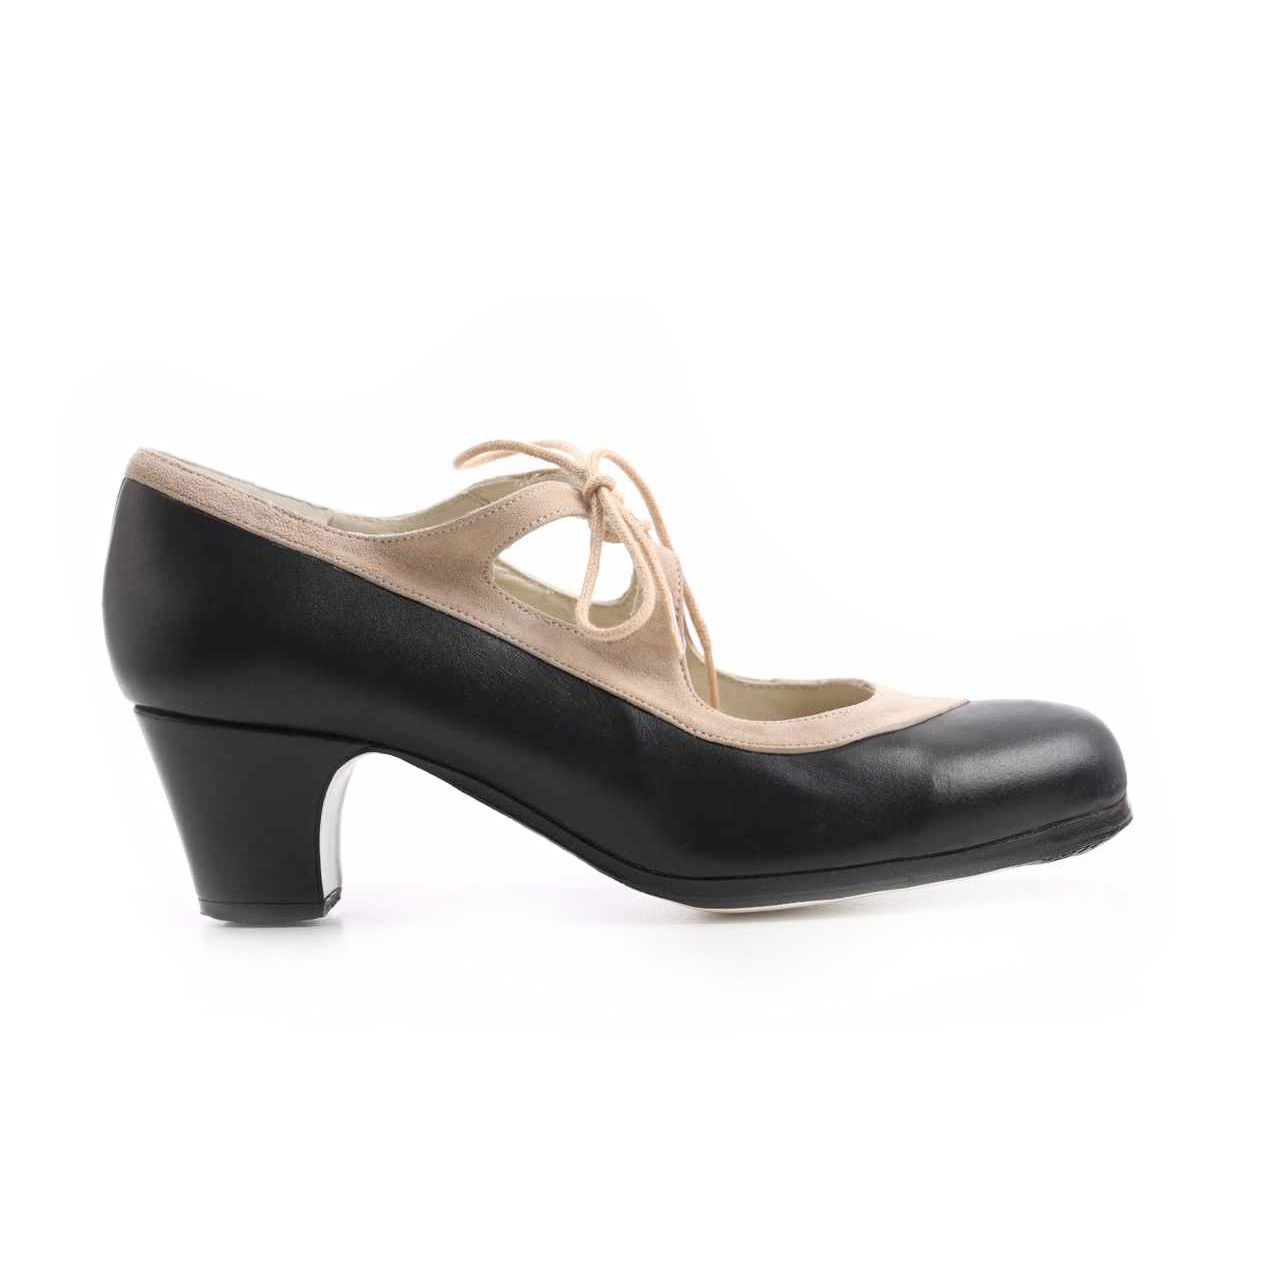 Flamenco dance Shoe Candor Black/Suède Beige